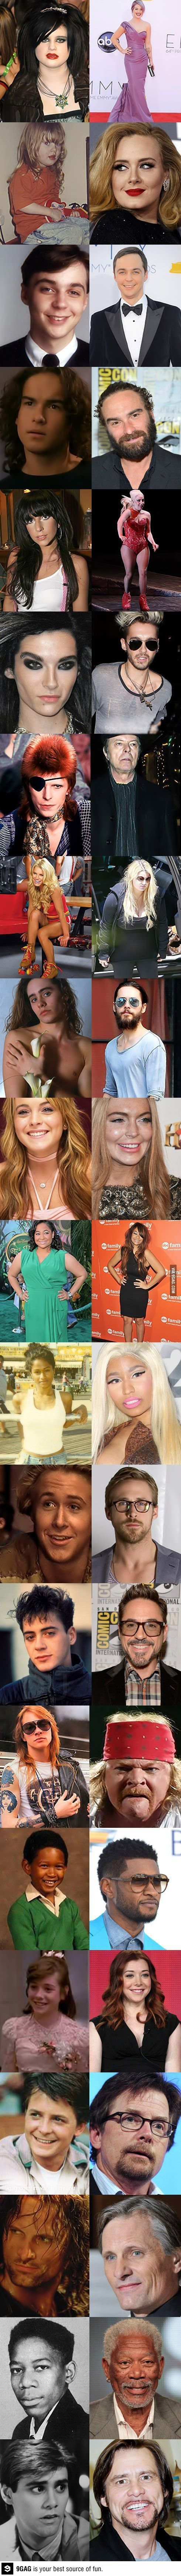 Celebrities change over time ..... People who are obsessed with staying young need to see this.